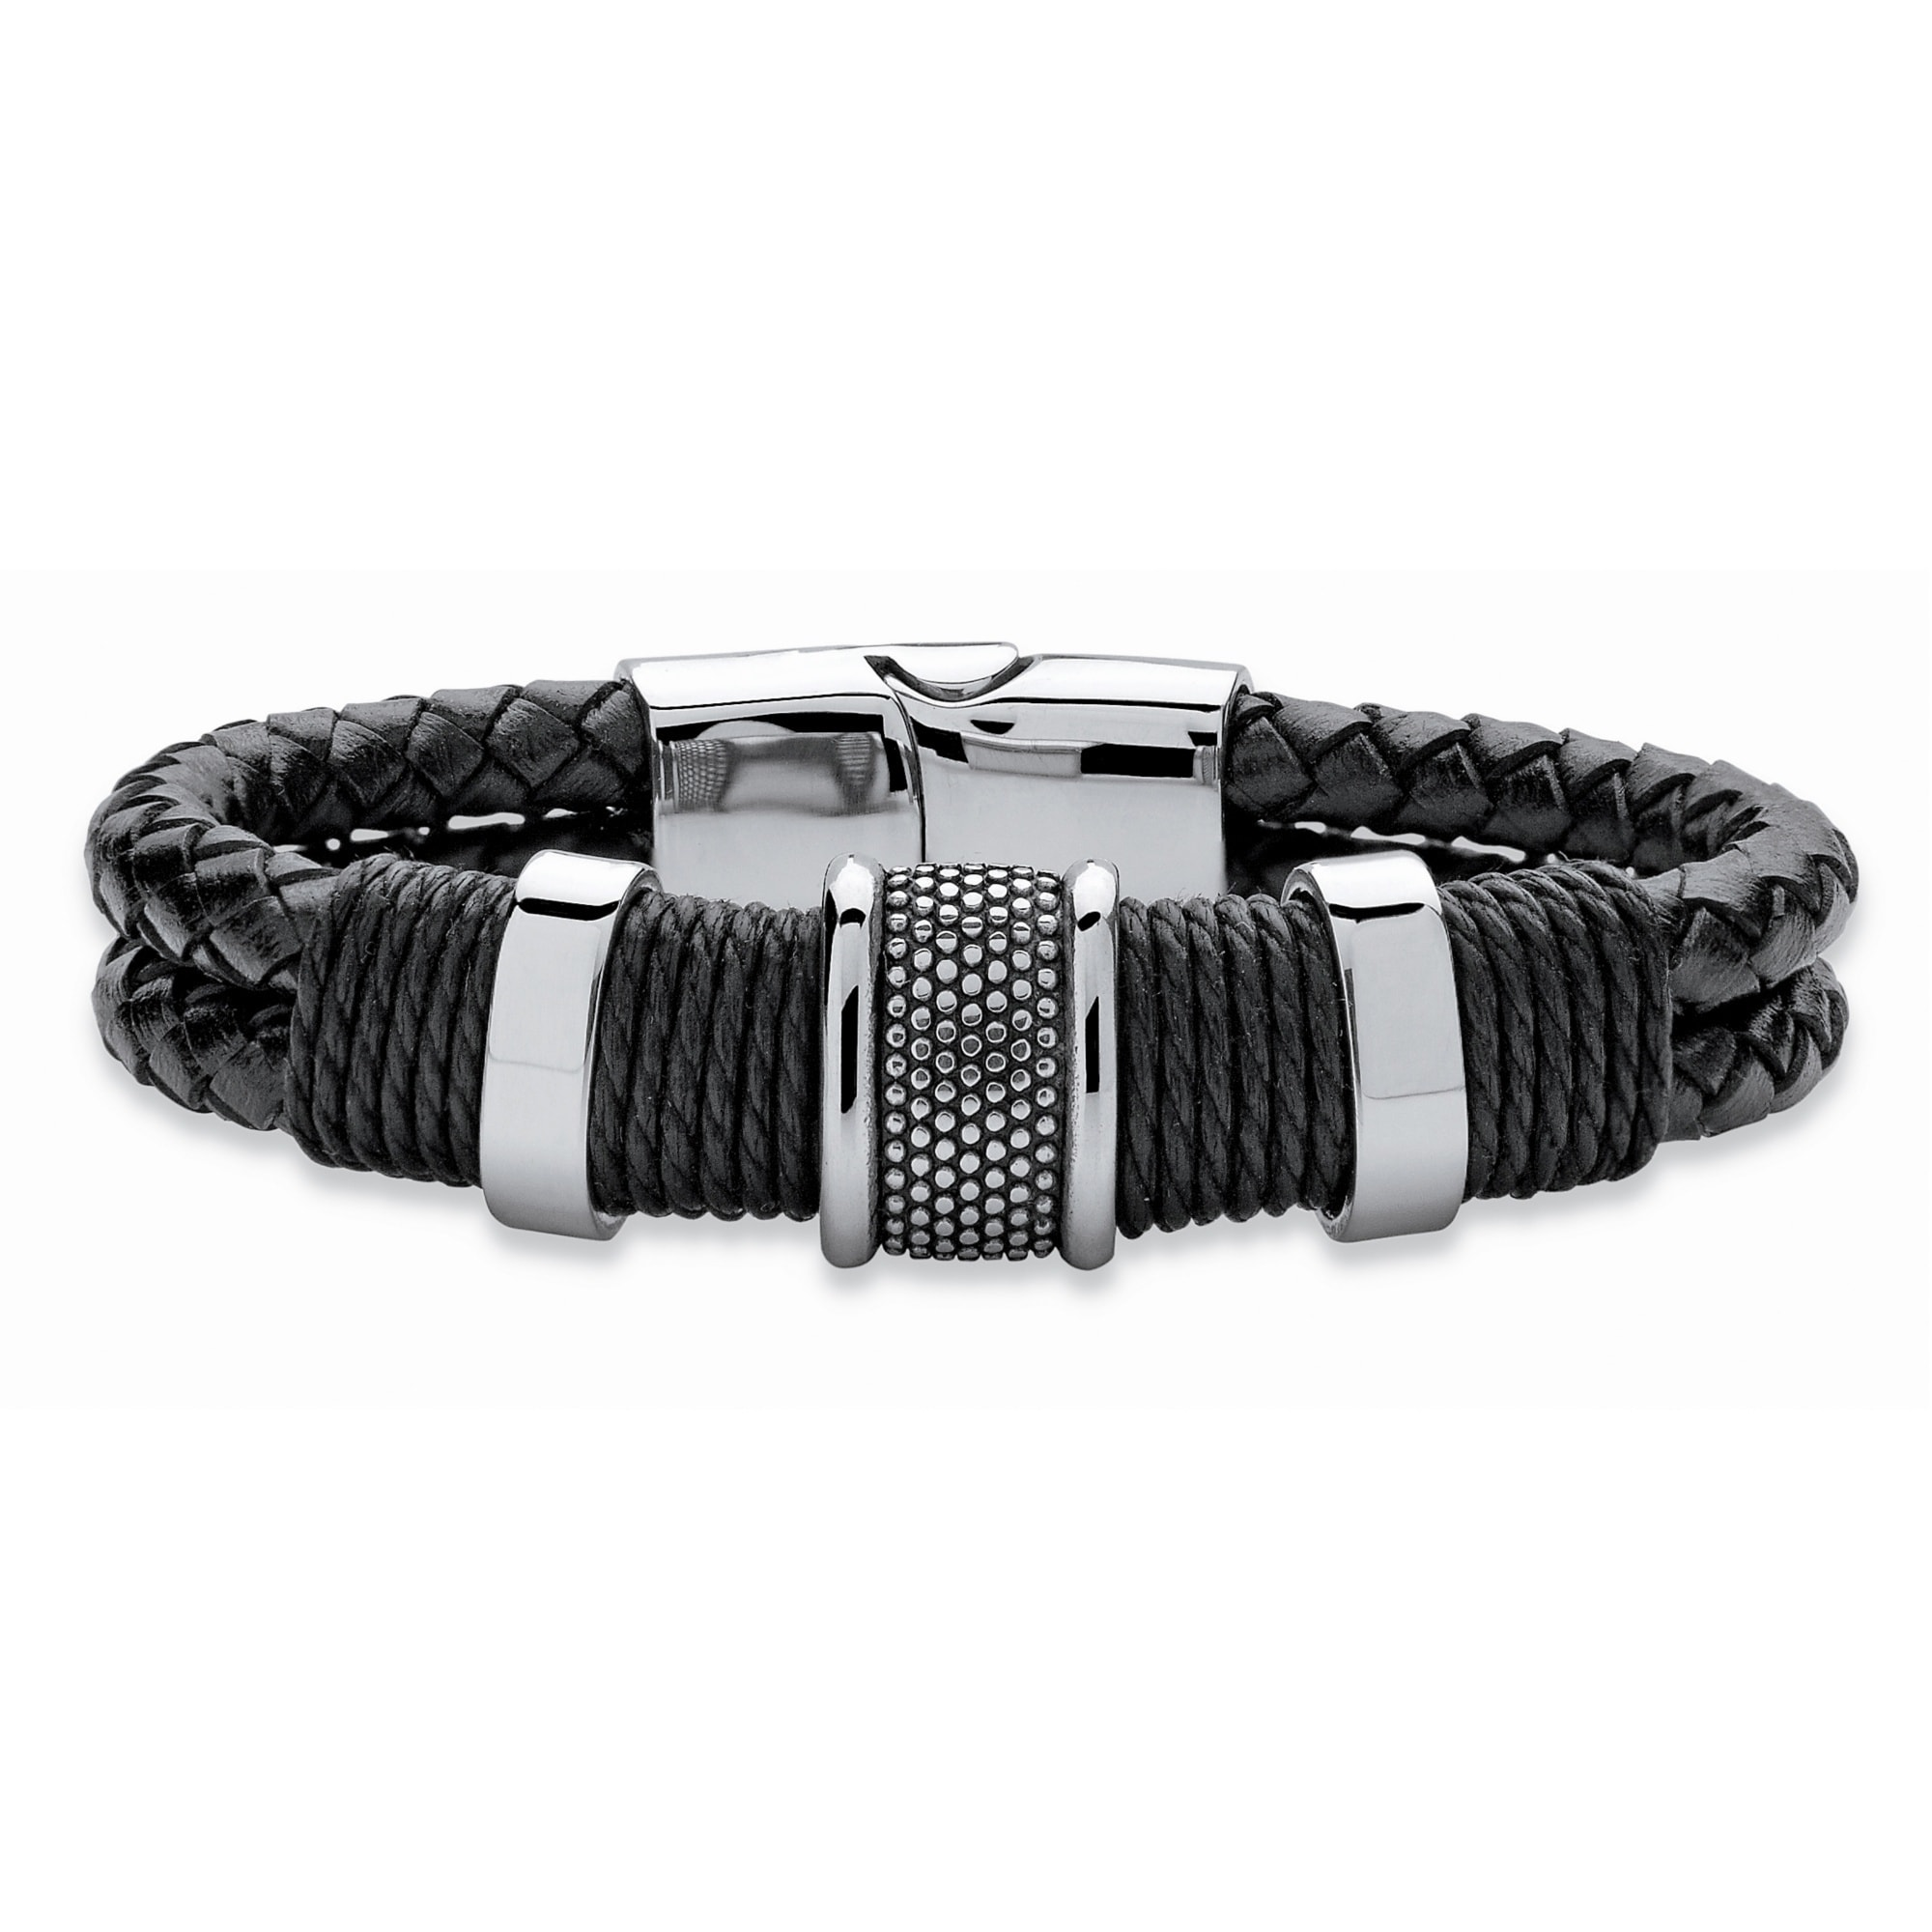 Black/&Silver Leather Braided Bracelet with Magnetic Clasp 8.27 Perfect Gift Stainless Steel Bracelet for Men